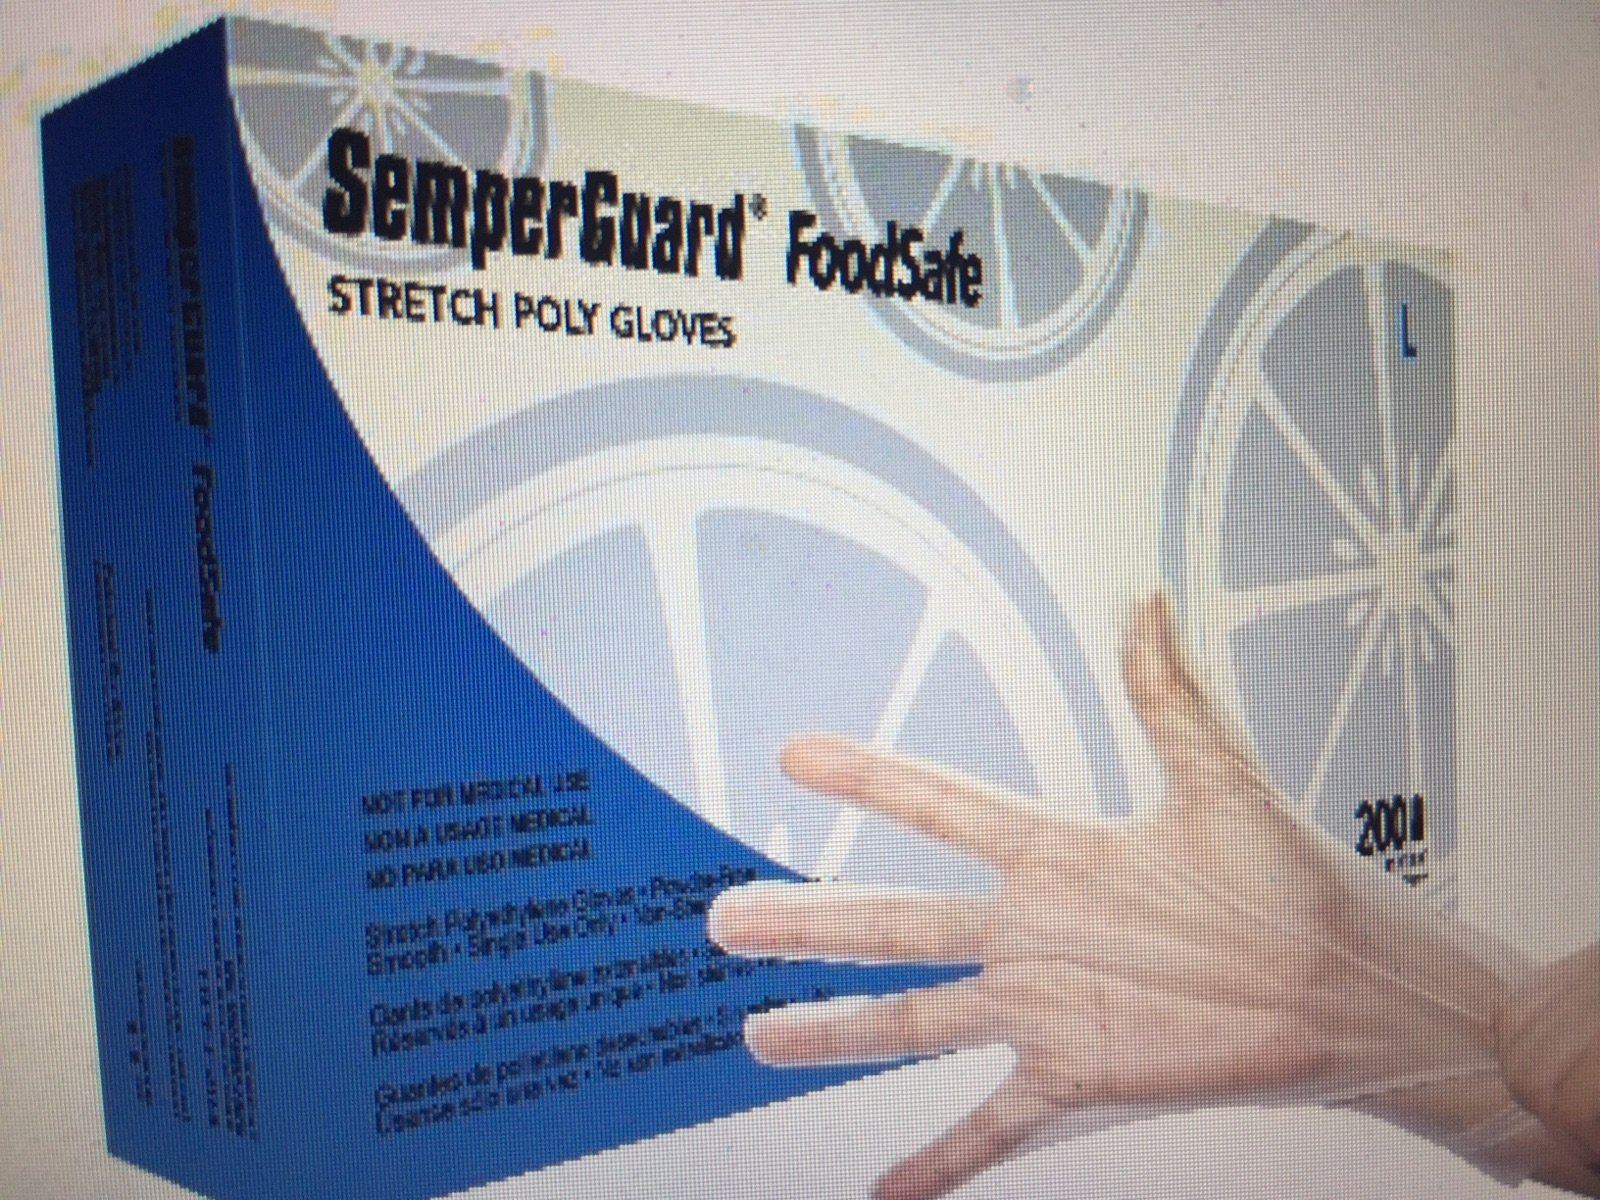 SemperGuard Food Safe Stretch Poly Gloves (10 boxes of 200) X-LARGE